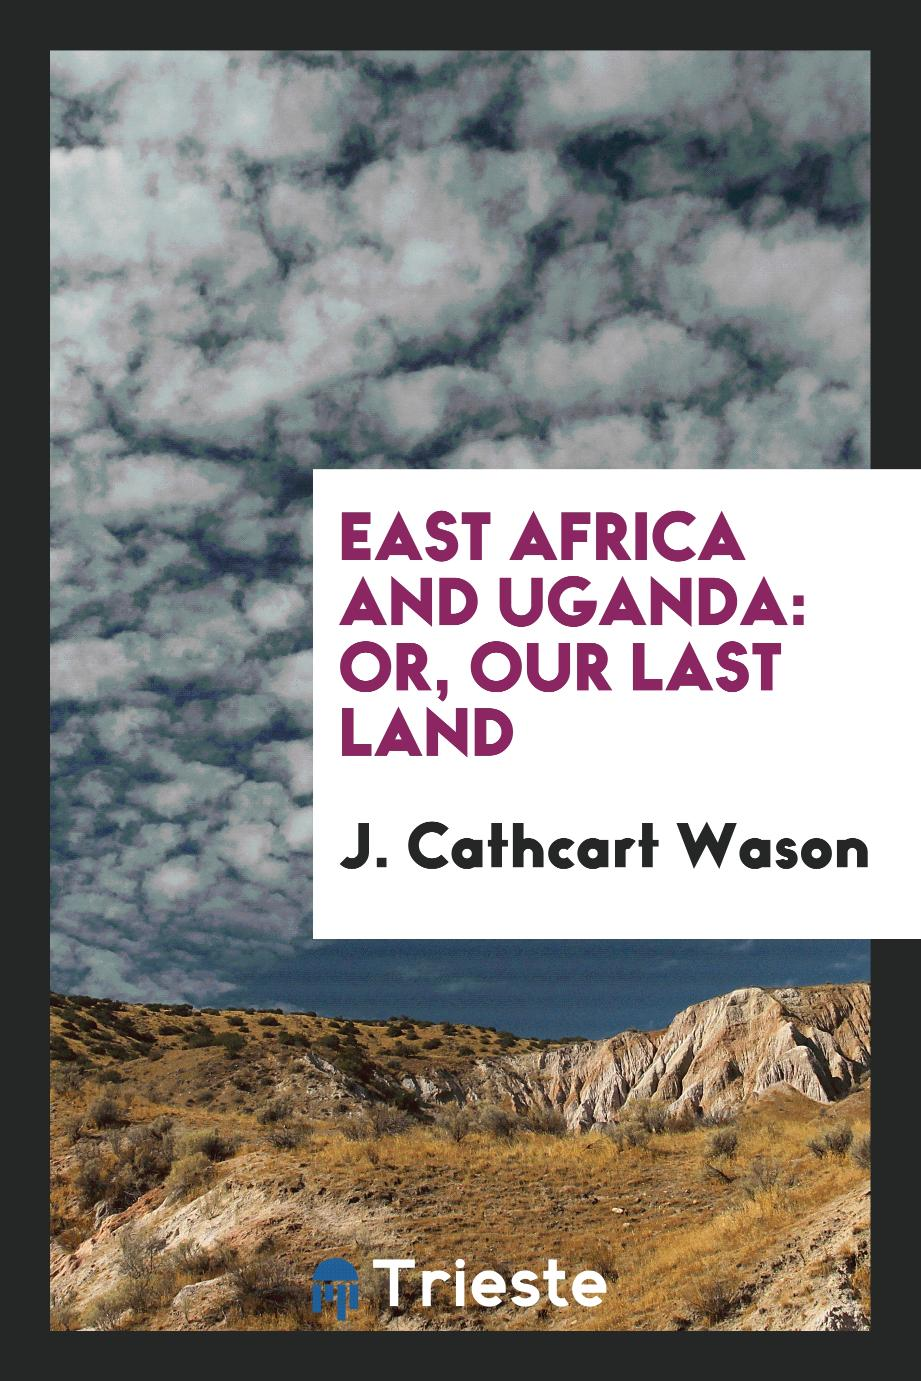 East Africa and Uganda: Or, Our Last Land